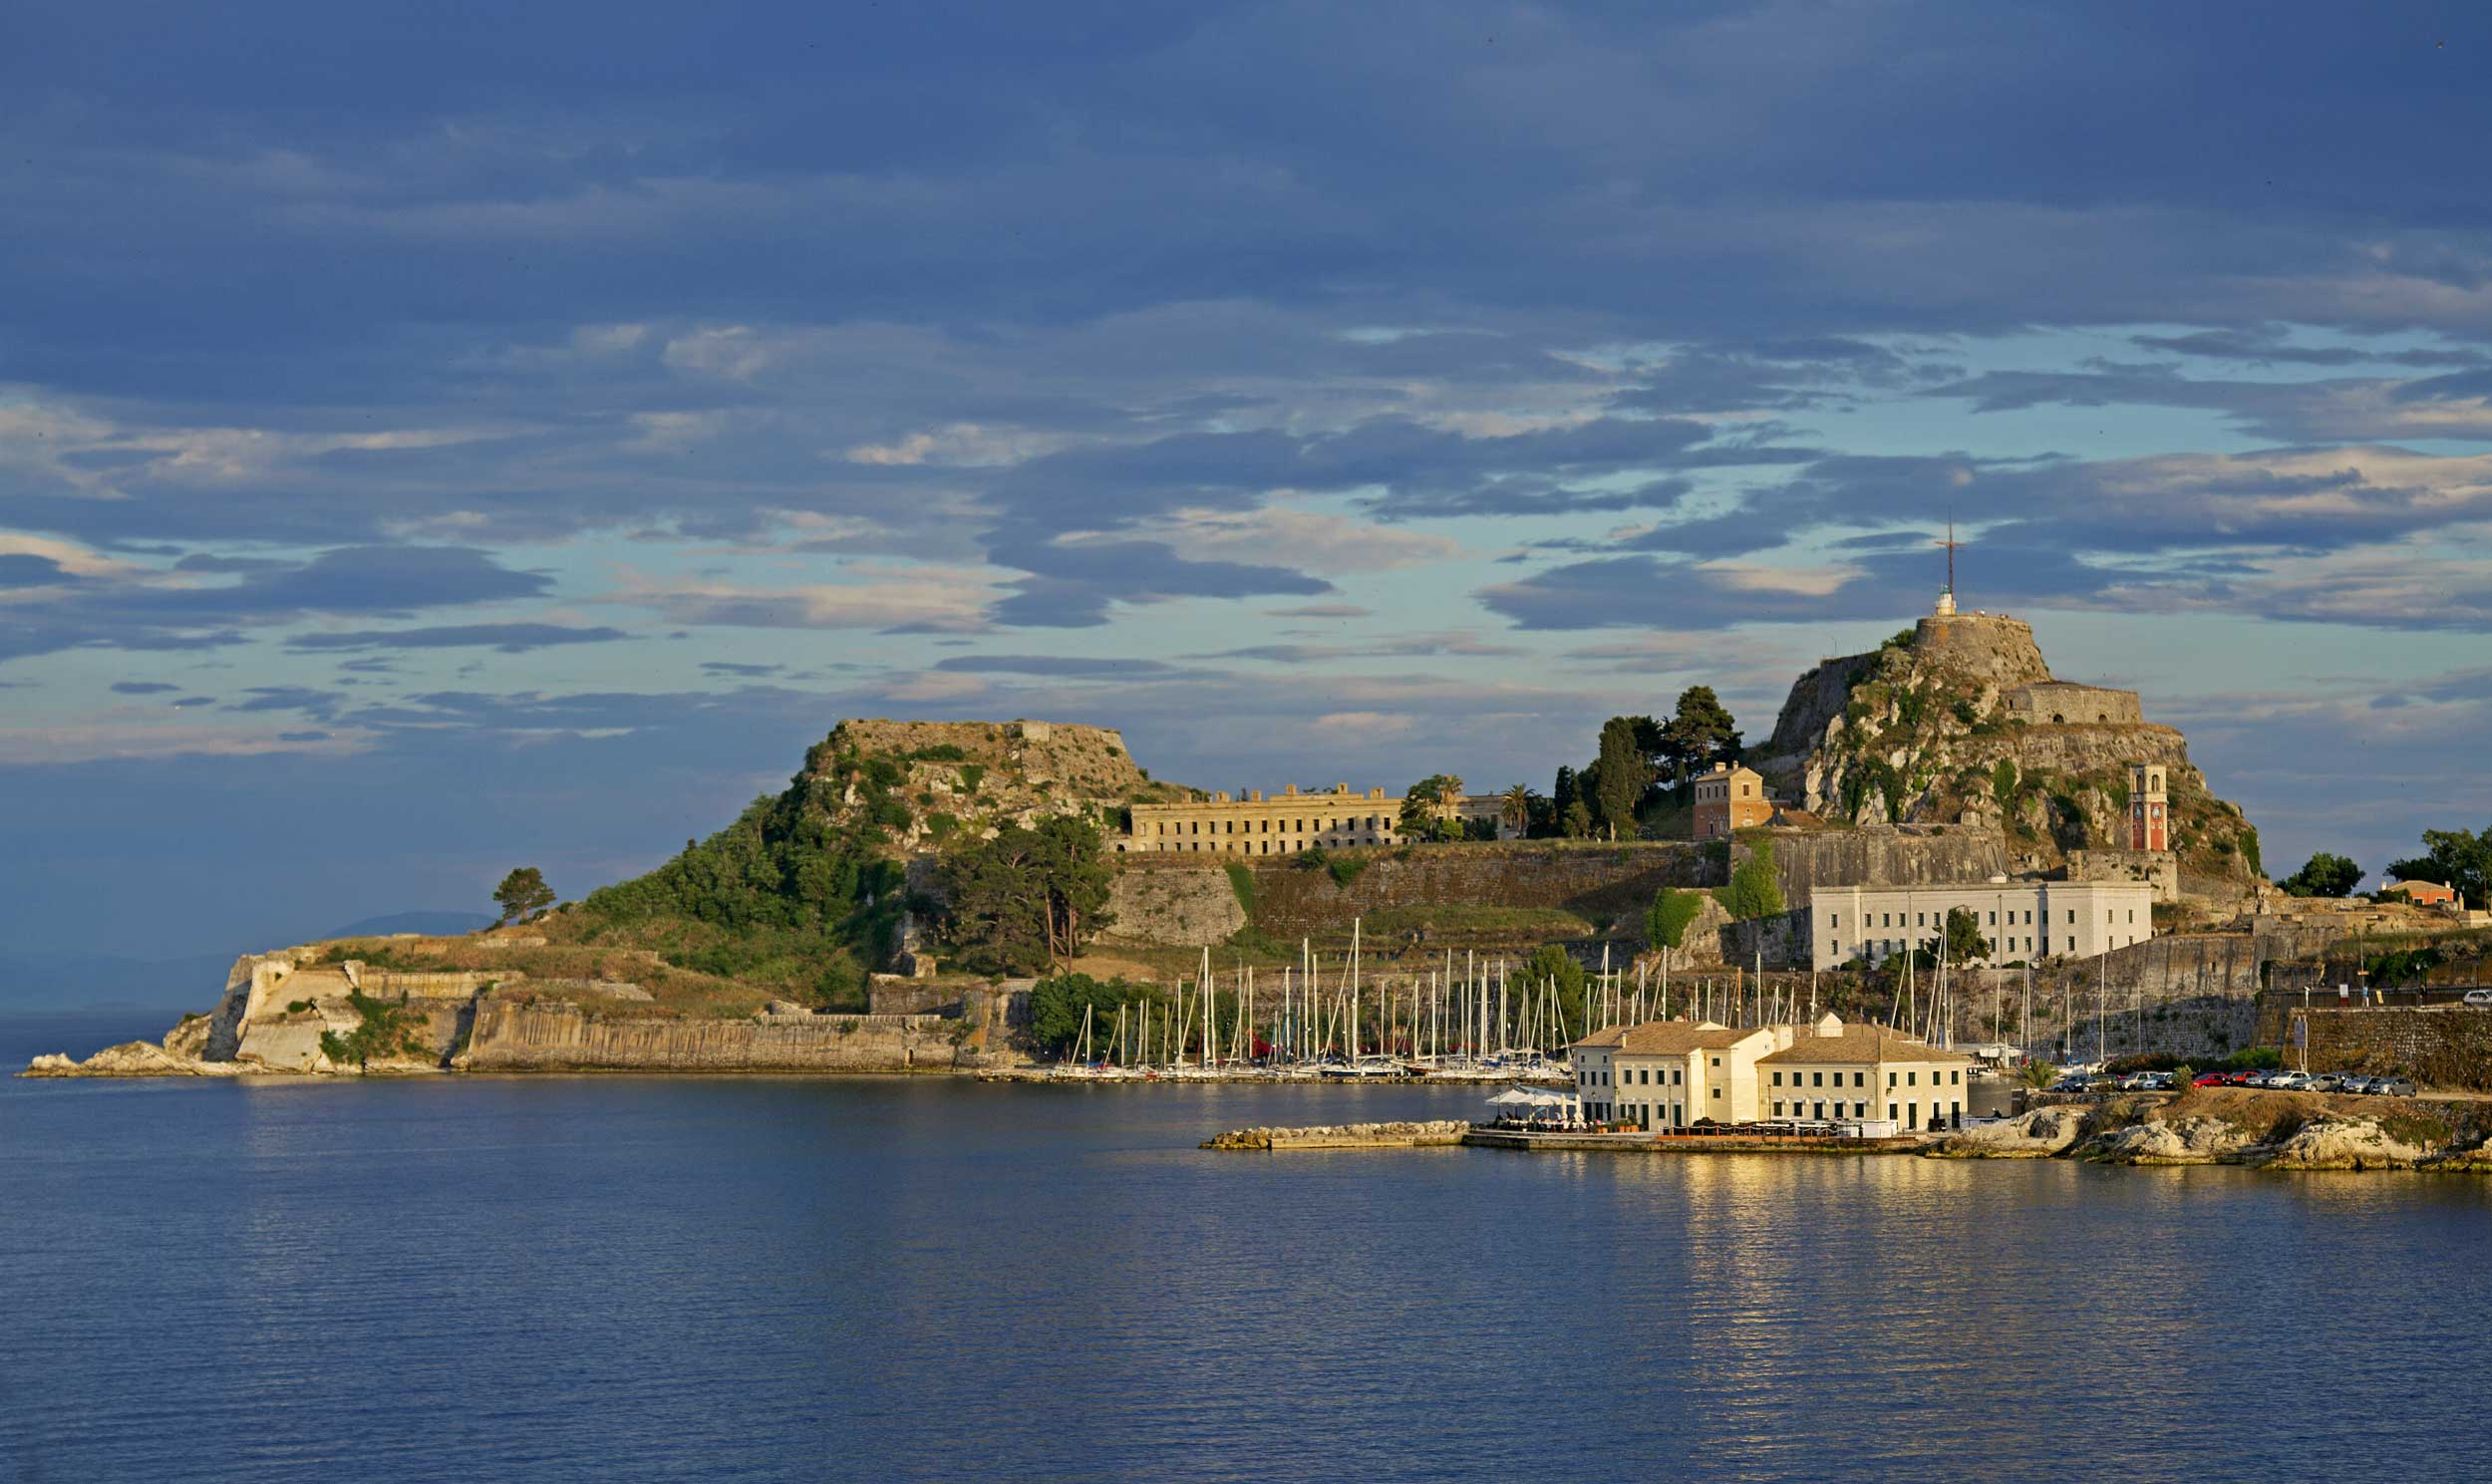 View across water towards a medieval town and fortresses on either side, Greece